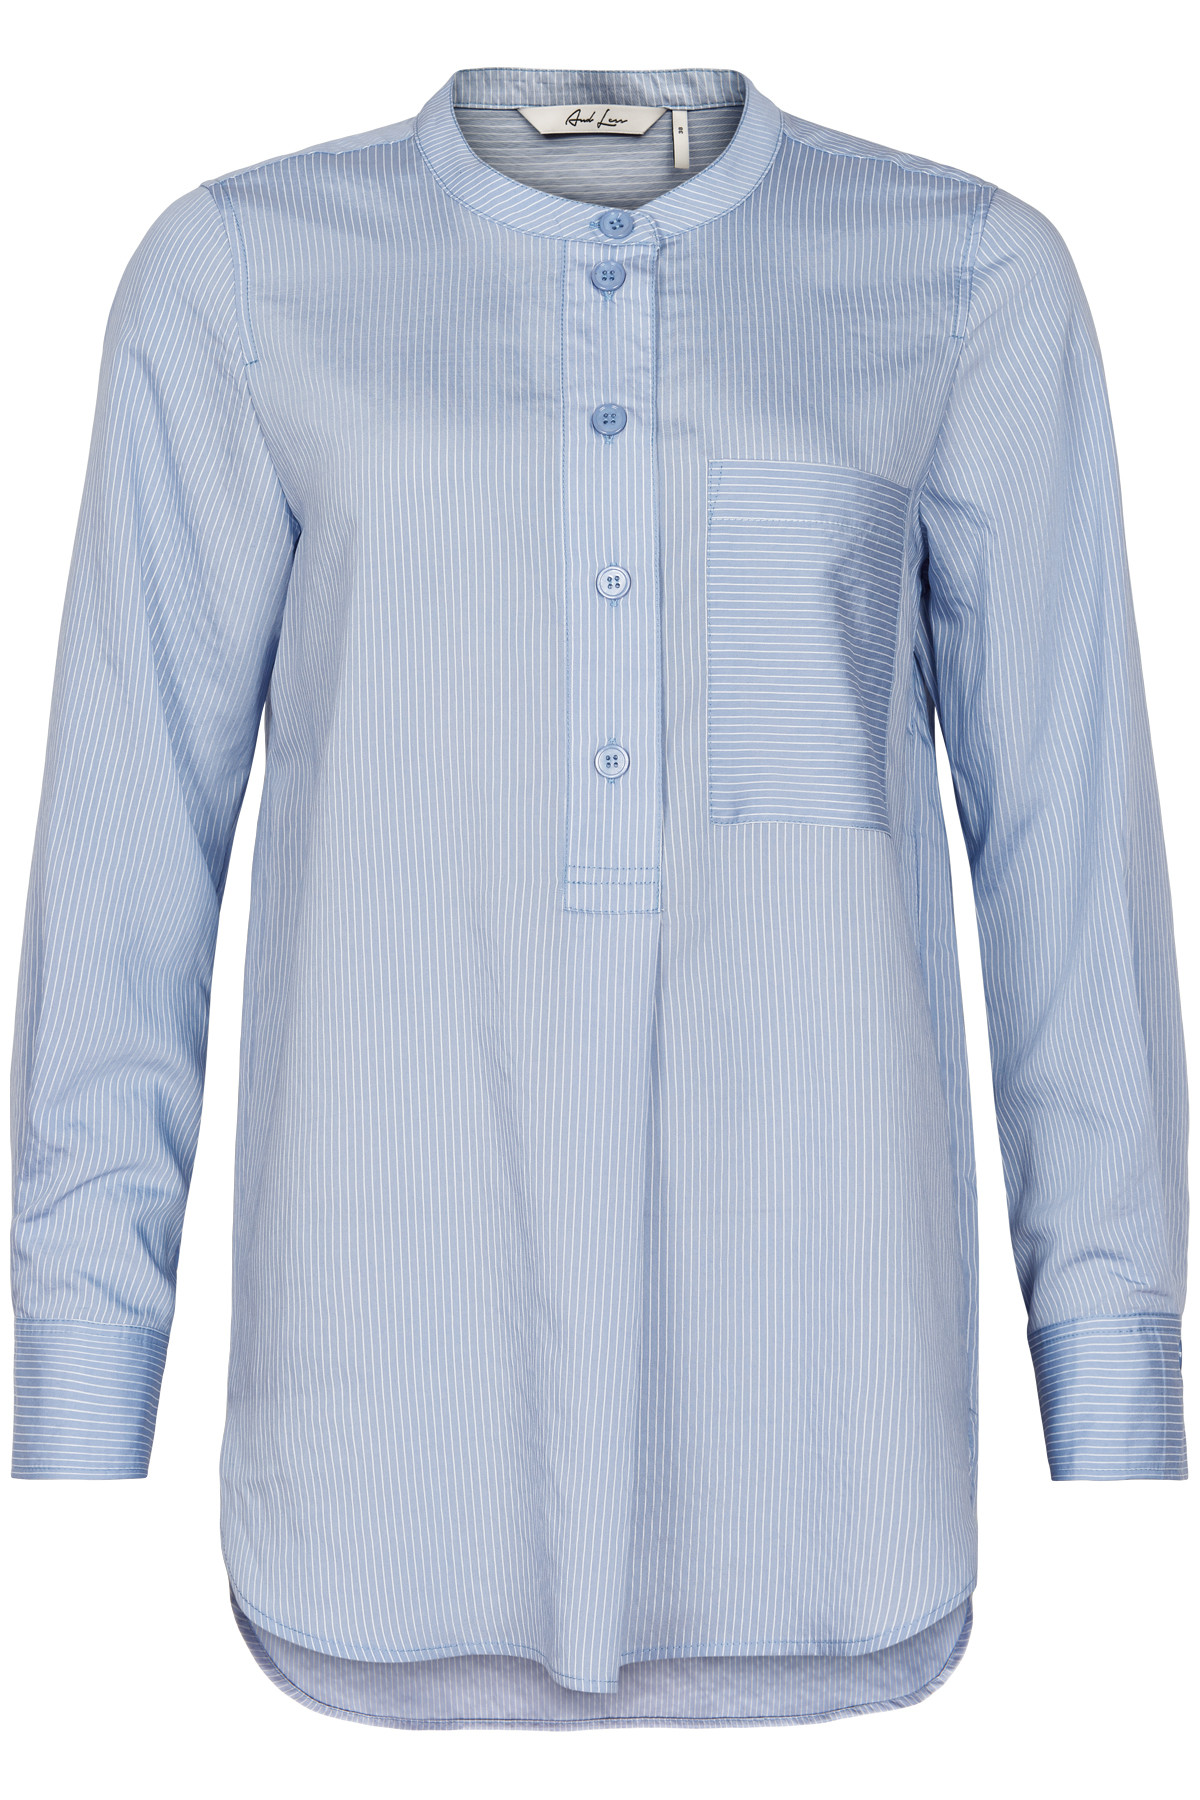 Image of   AND LESS ALACE BLUSE 5120002 (Colony Blue, 40)